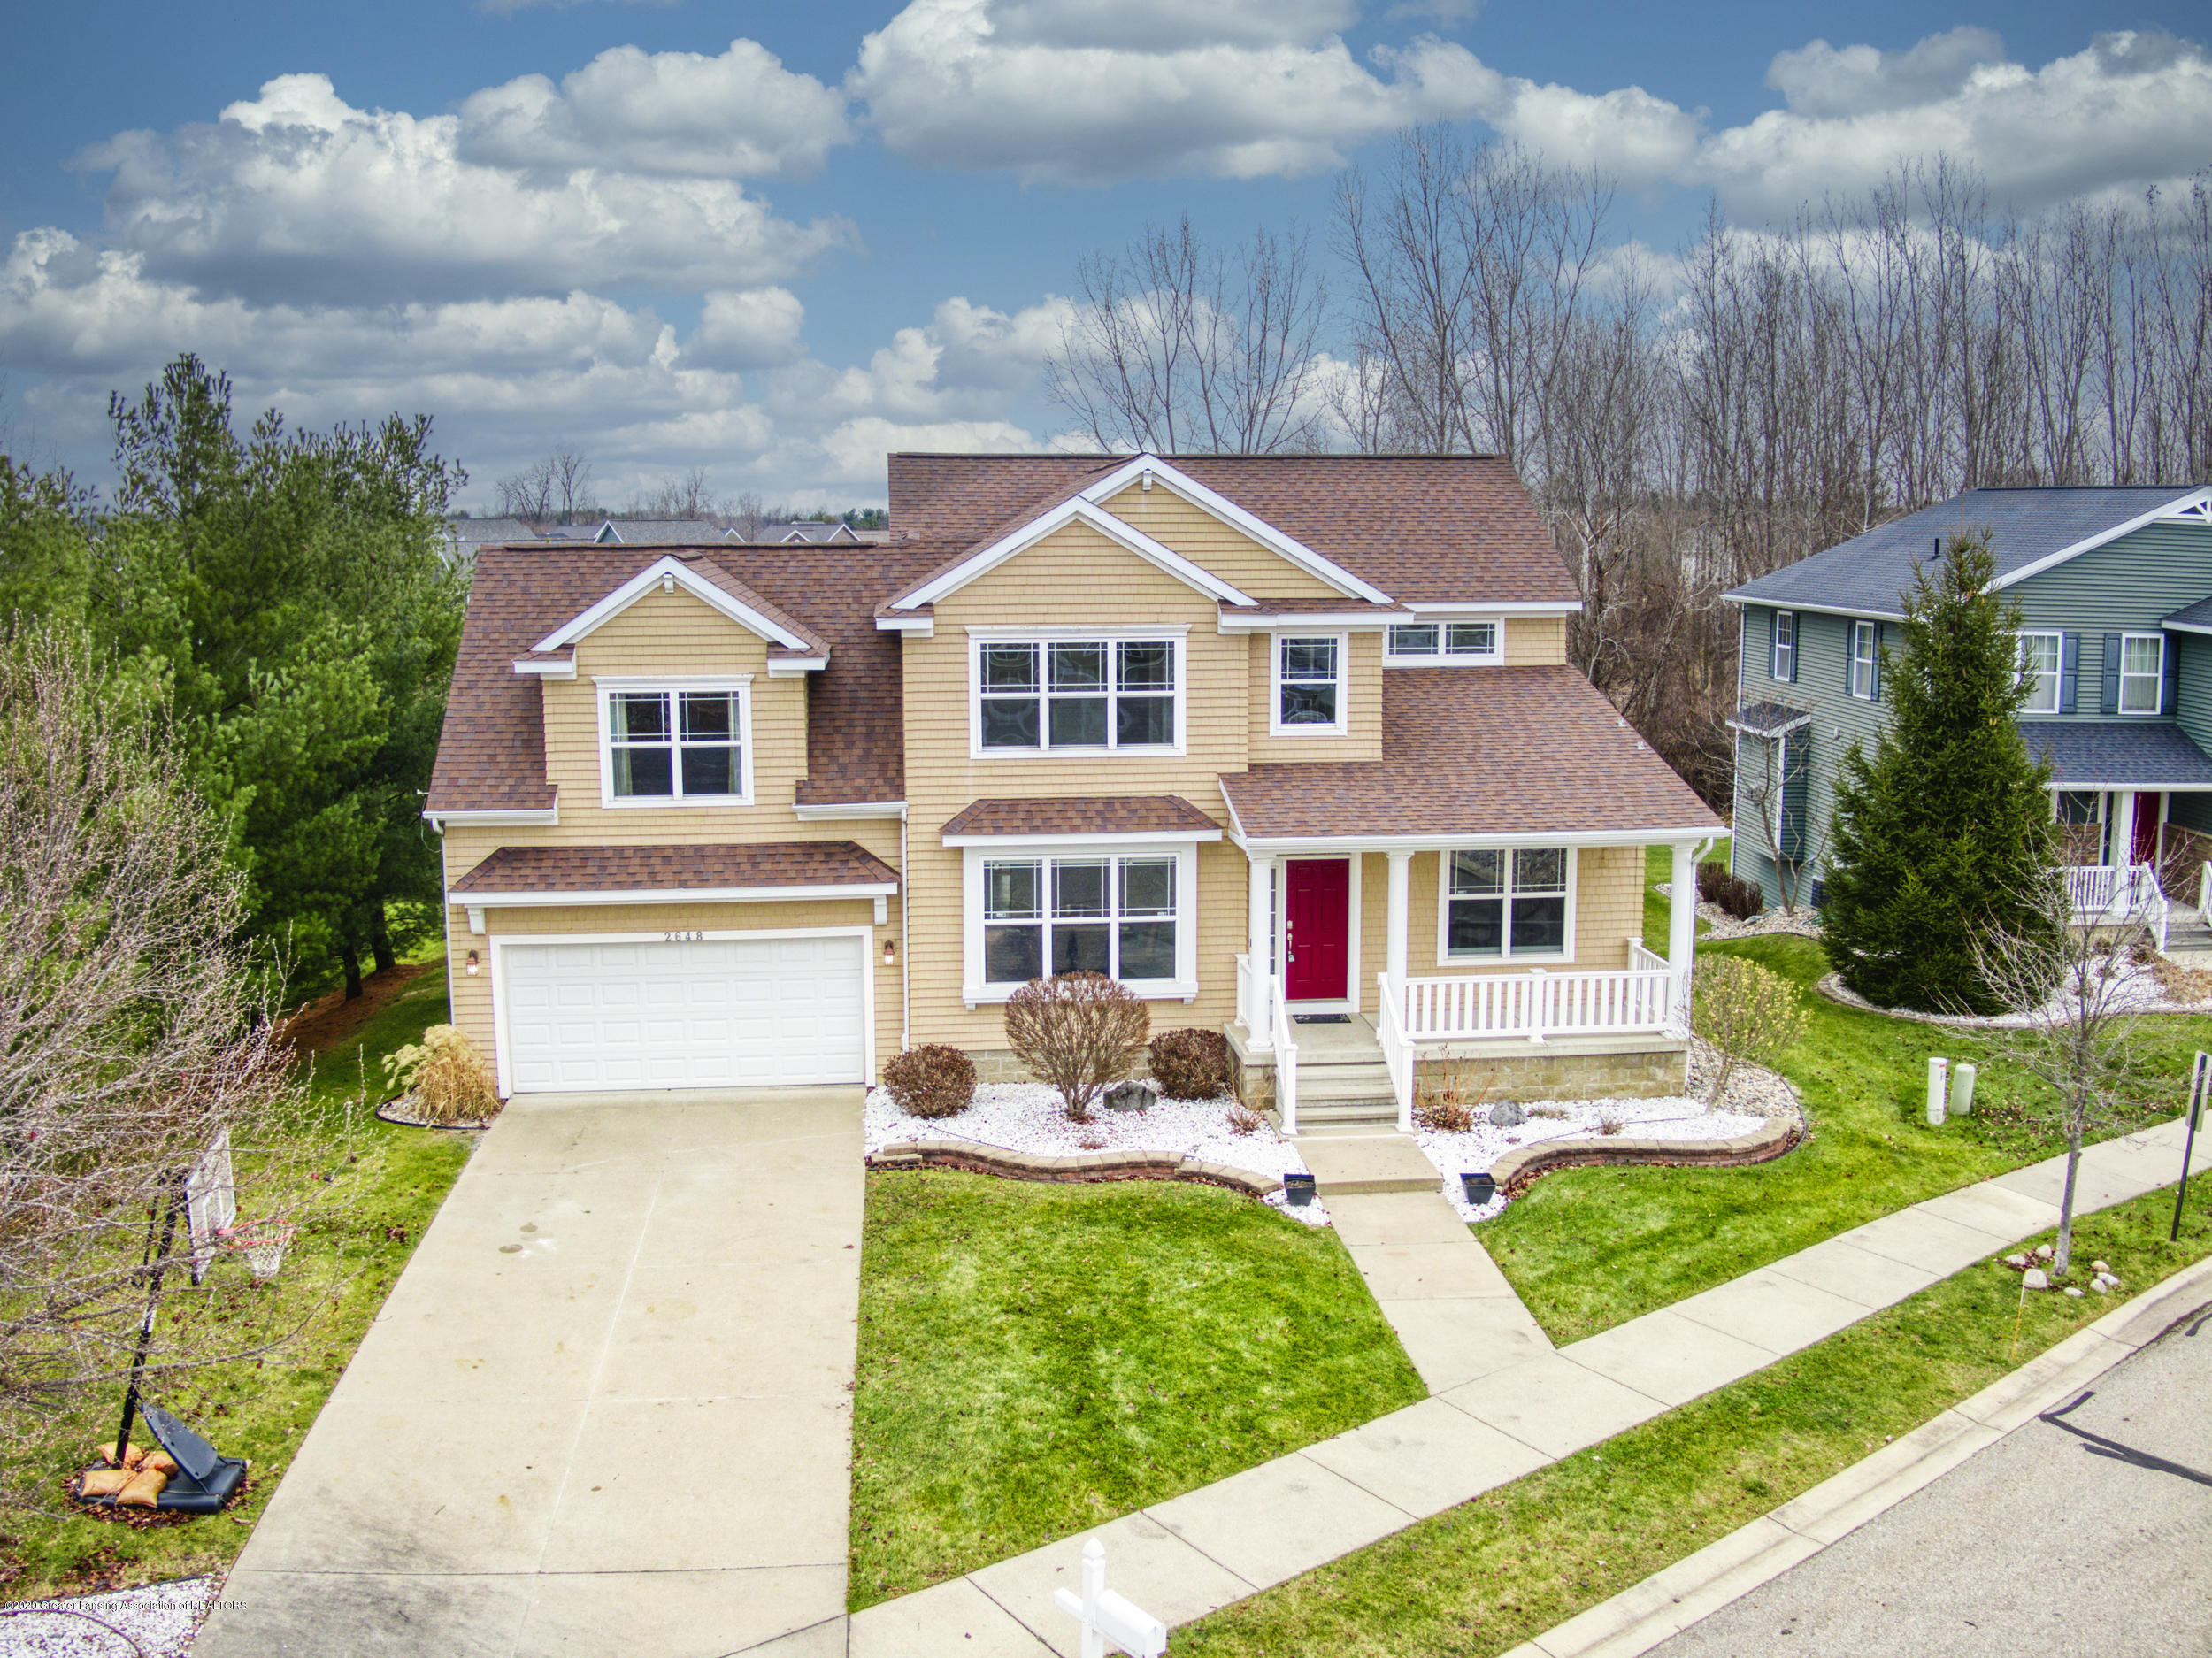 2648 Elderberry Dr - DJI_0753_1 - 1